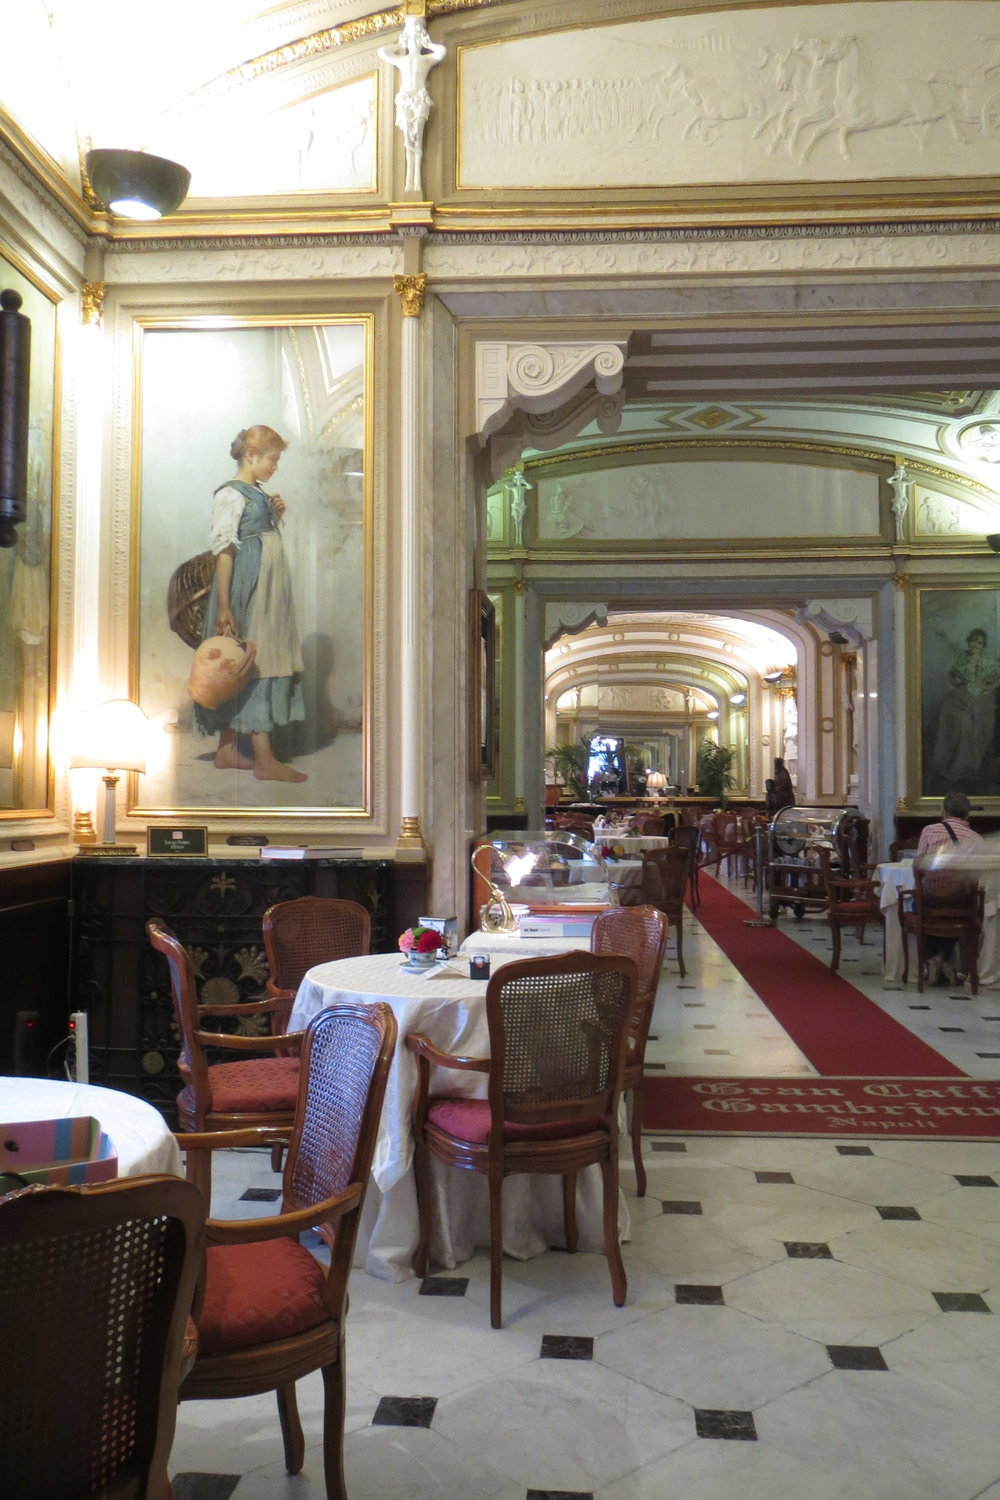 The elegant interior of the caffe' Gambrinus.